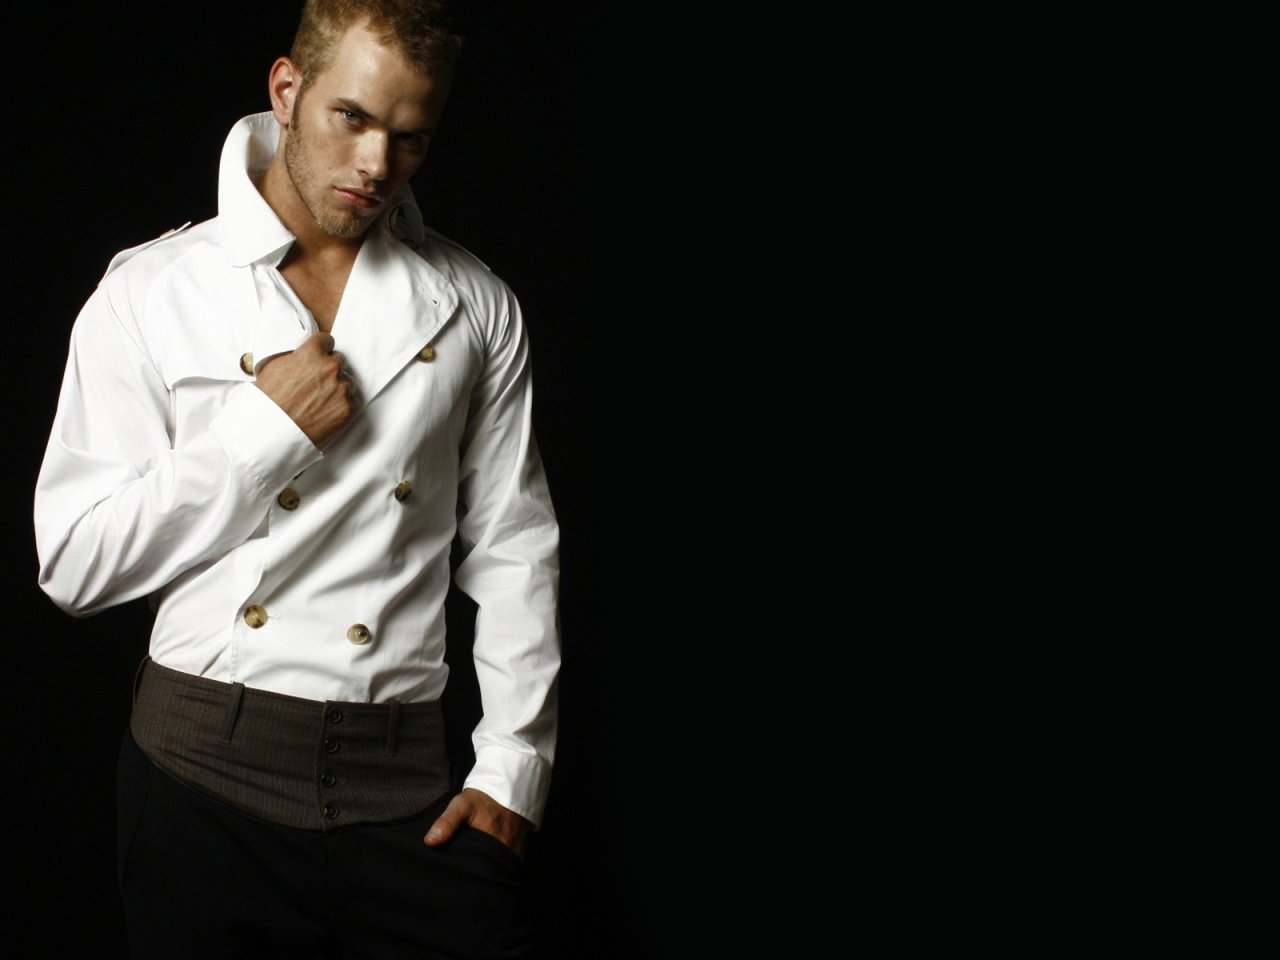 Kellan Lutz - Wallpaper Hot